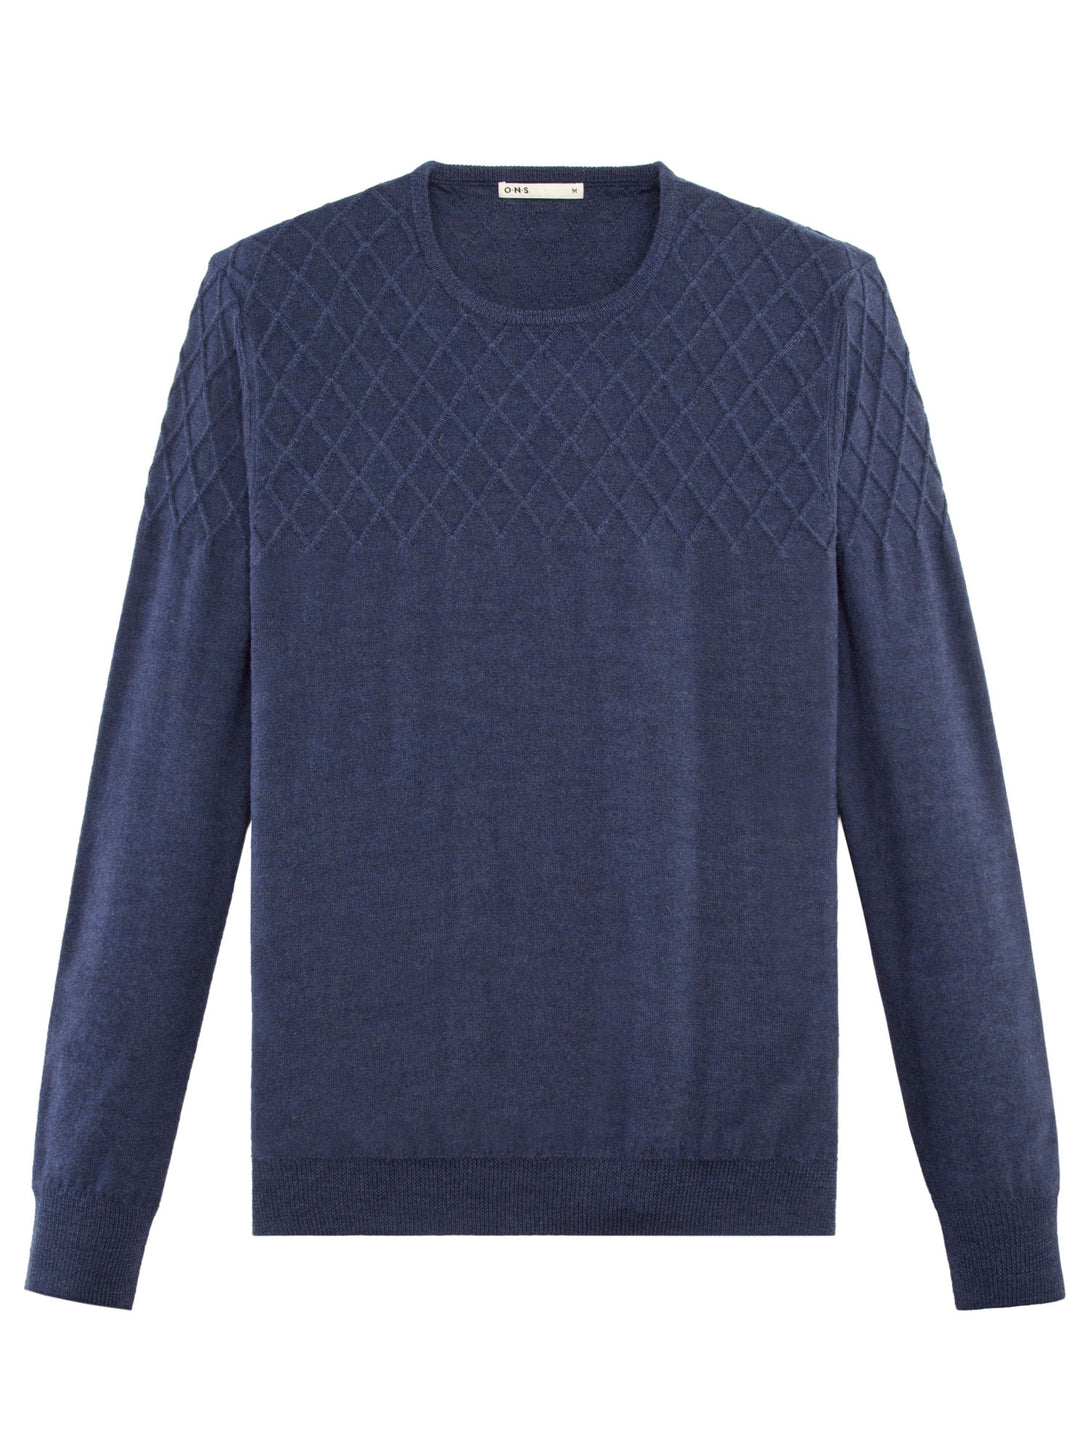 NAVY DIAMOND TEXTURED CREW NECK